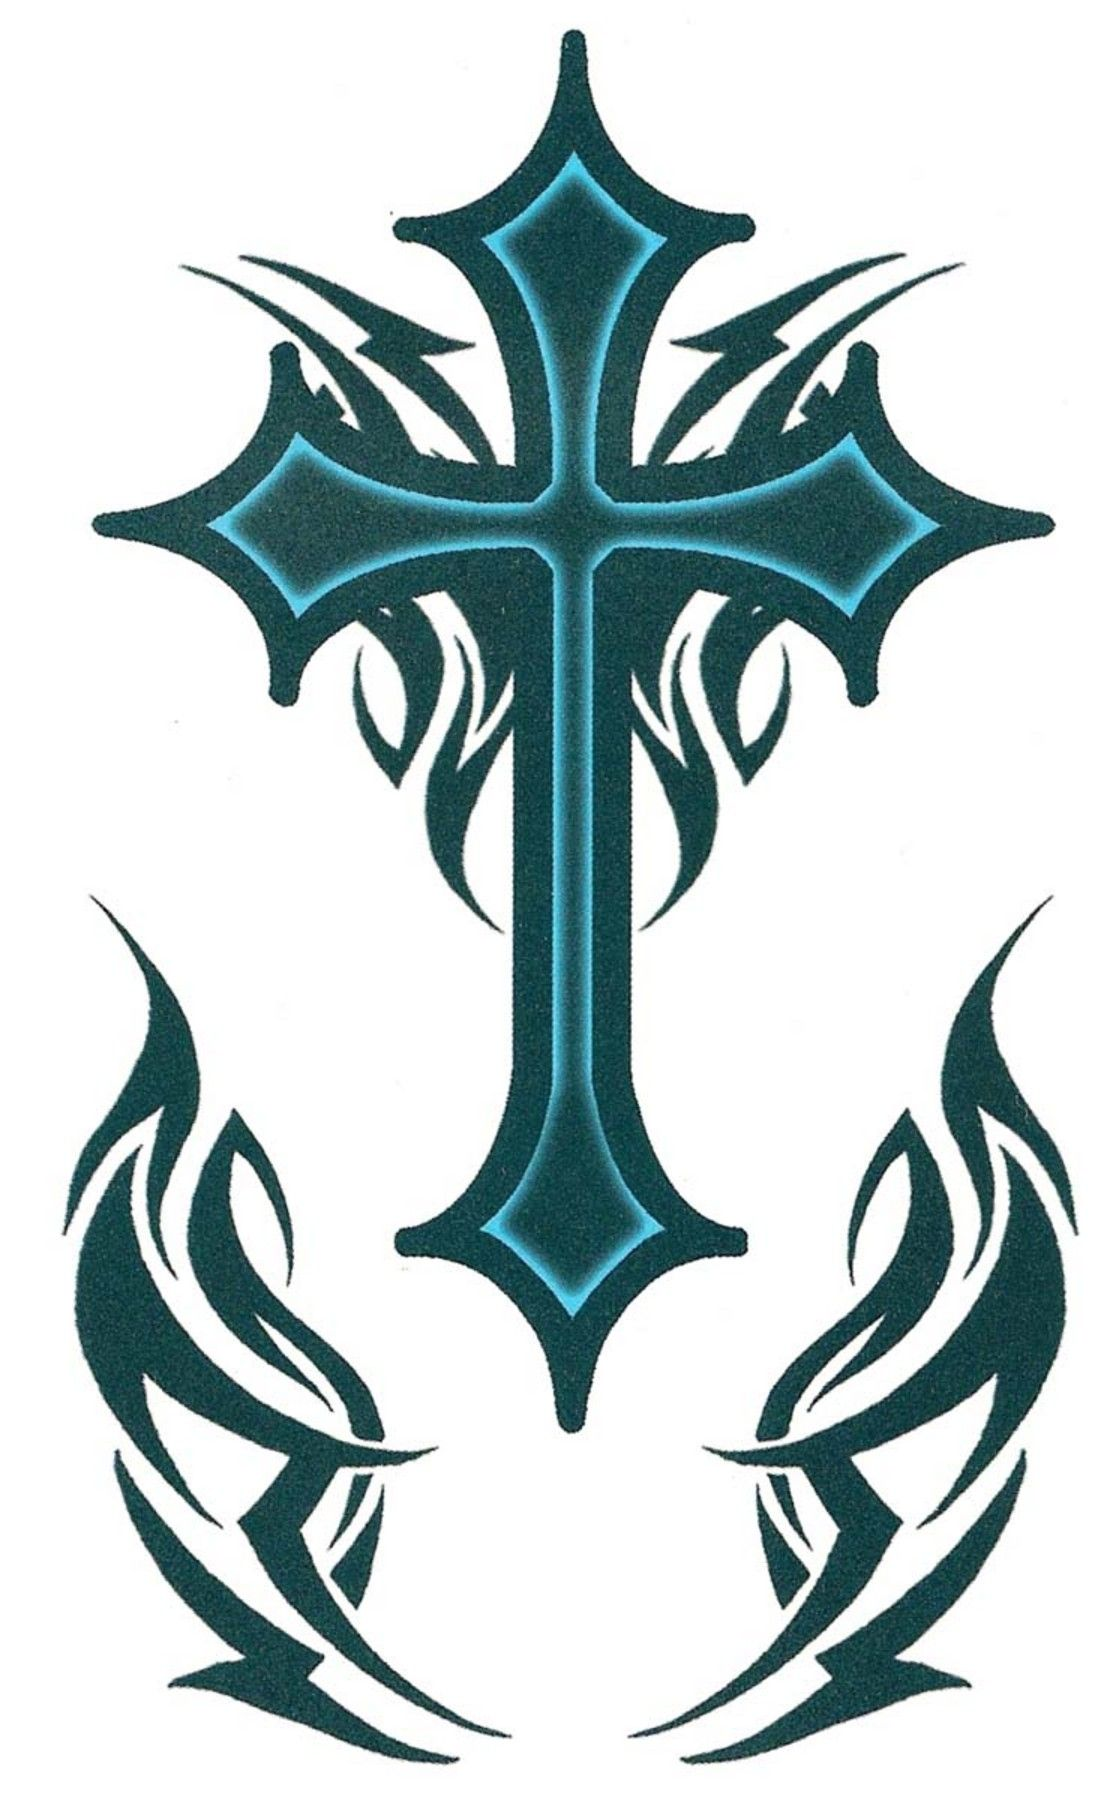 Cross tattoos for men - Gothic Cross Tattoos For Men 2 Pictures Photos Images